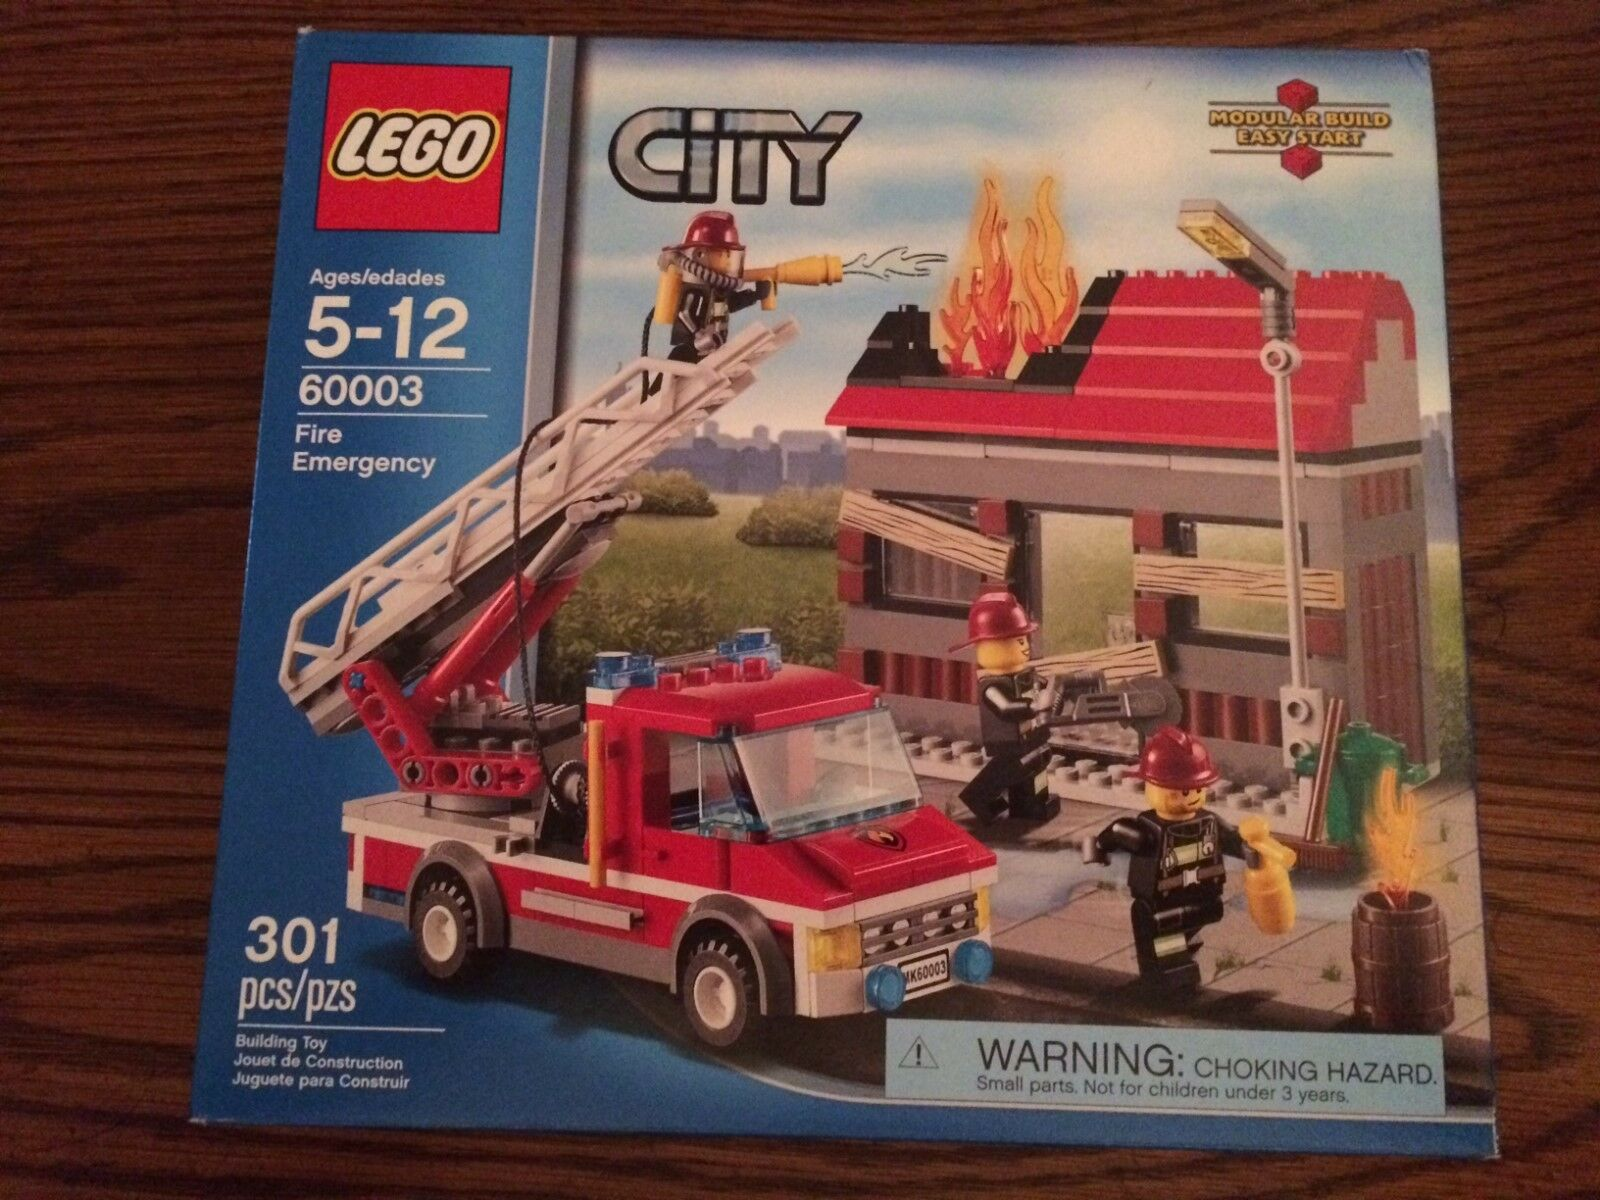 LEGO 60003 Fire Emergency from the City Series Nuovo in Box